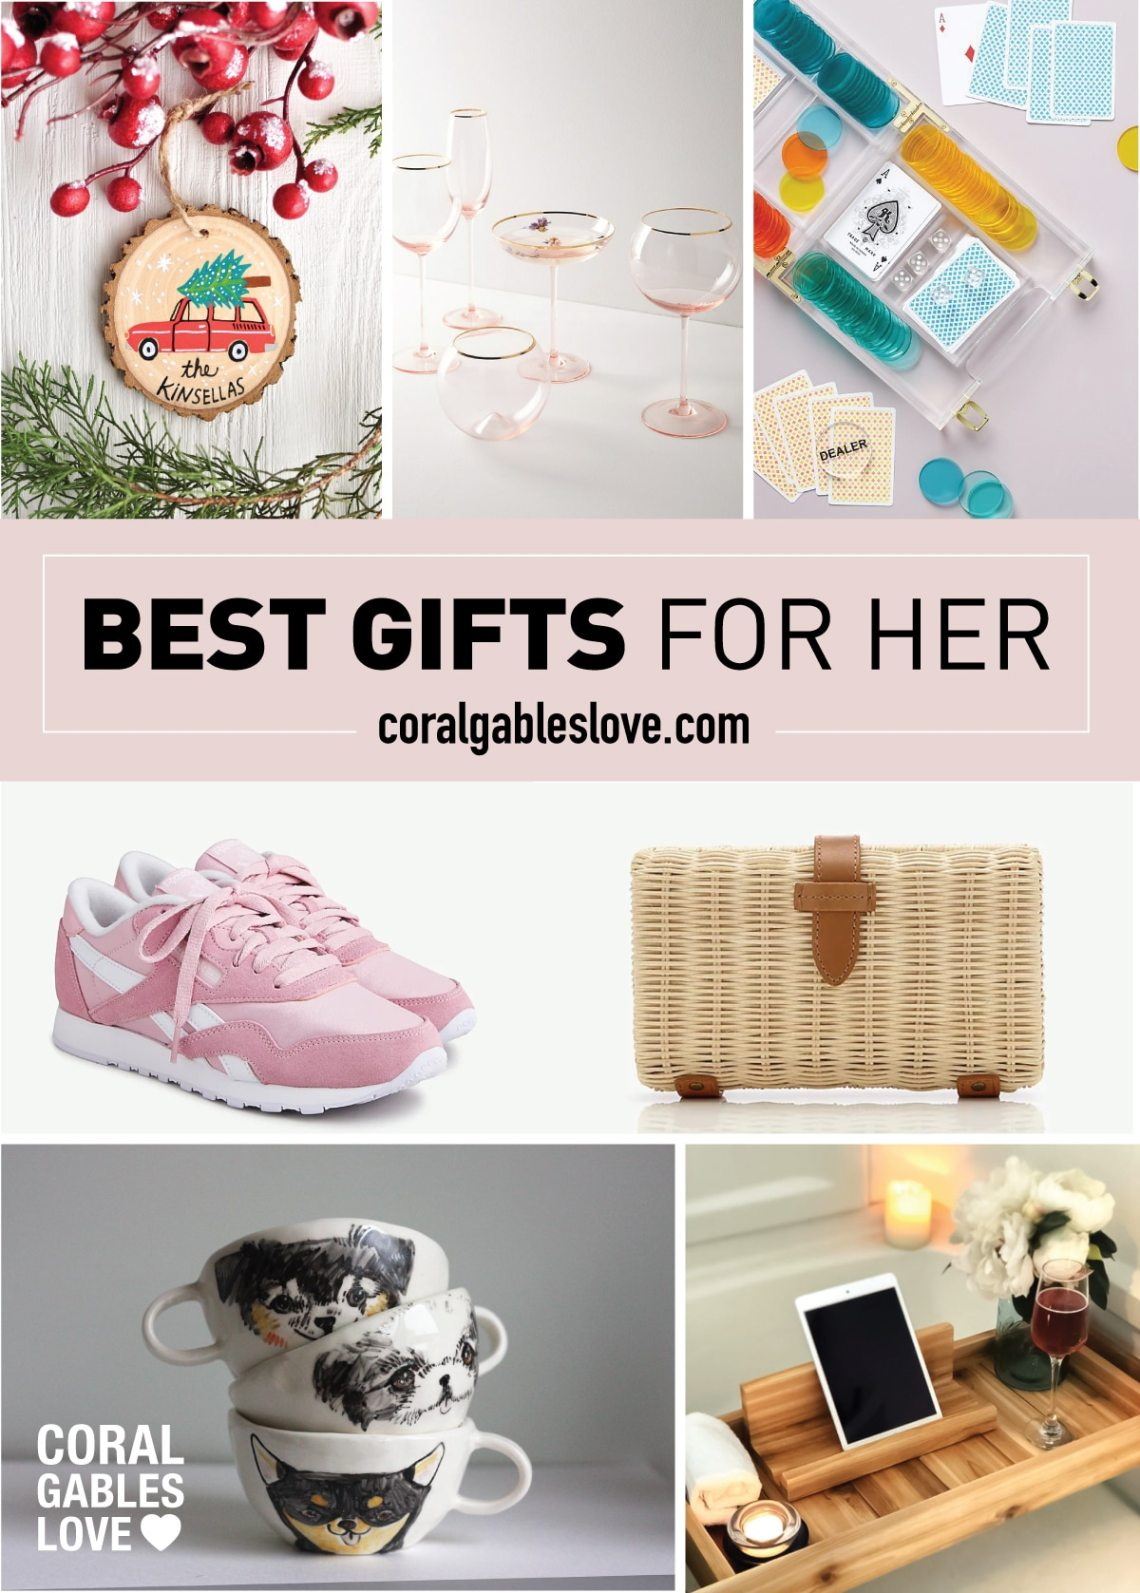 best gift for her 2020 - coral gables love gift guide